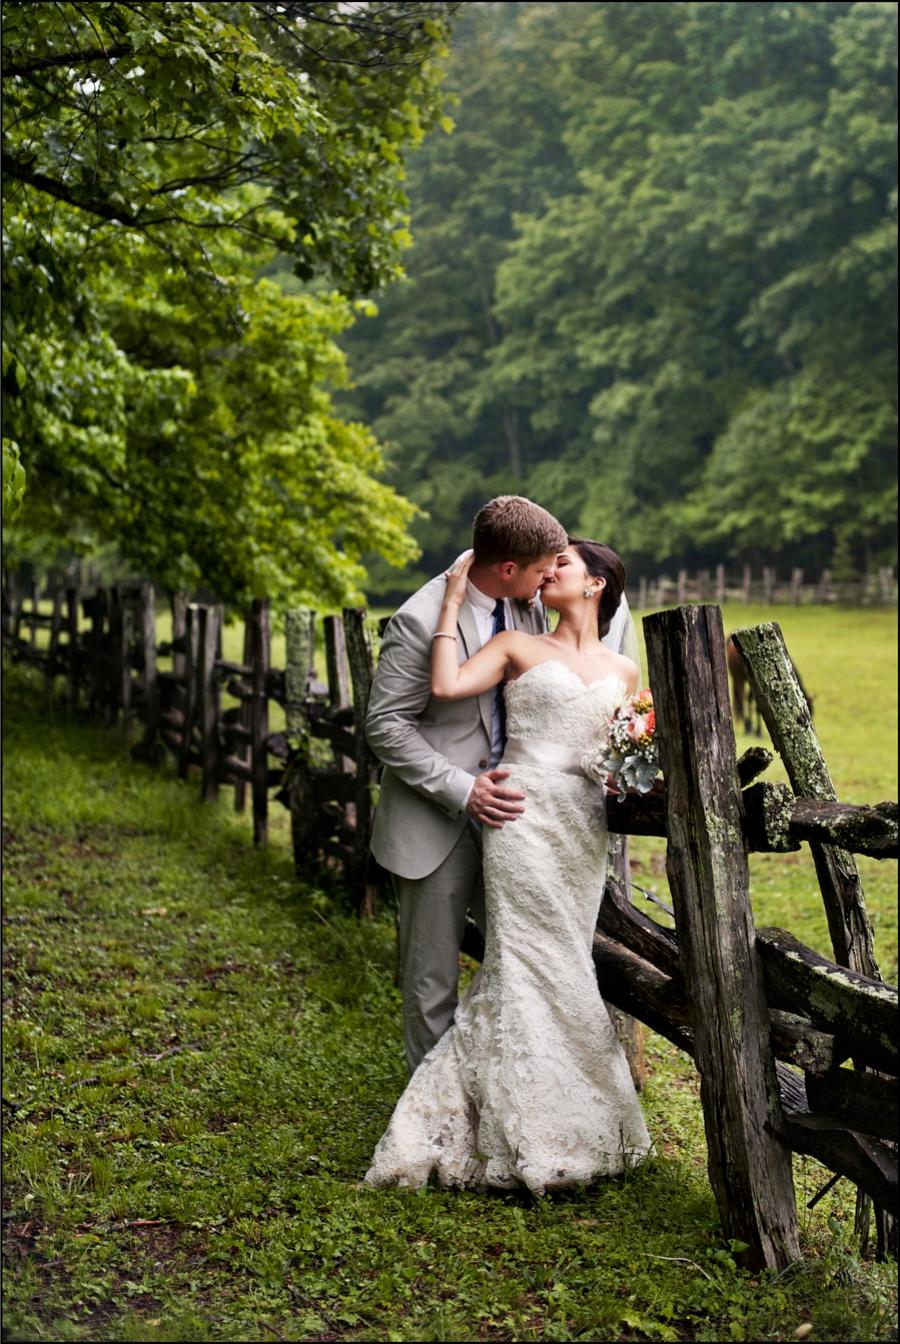 Bride and groom posing for a kiss - An image by Blume Photography